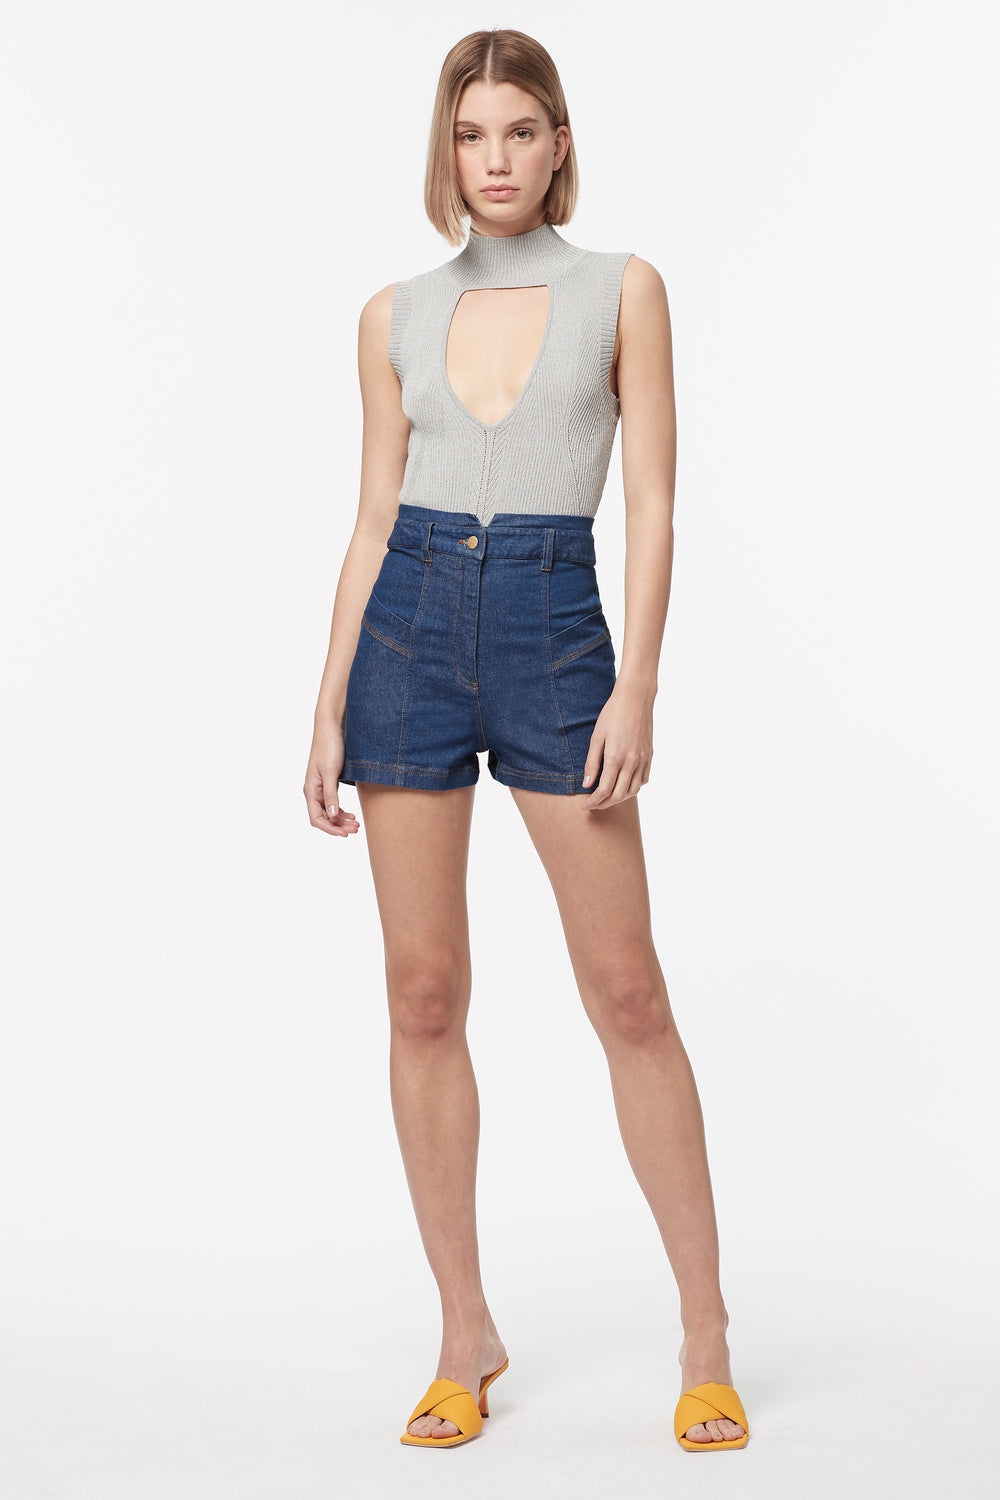 FADED GLORY DENIM SHORT